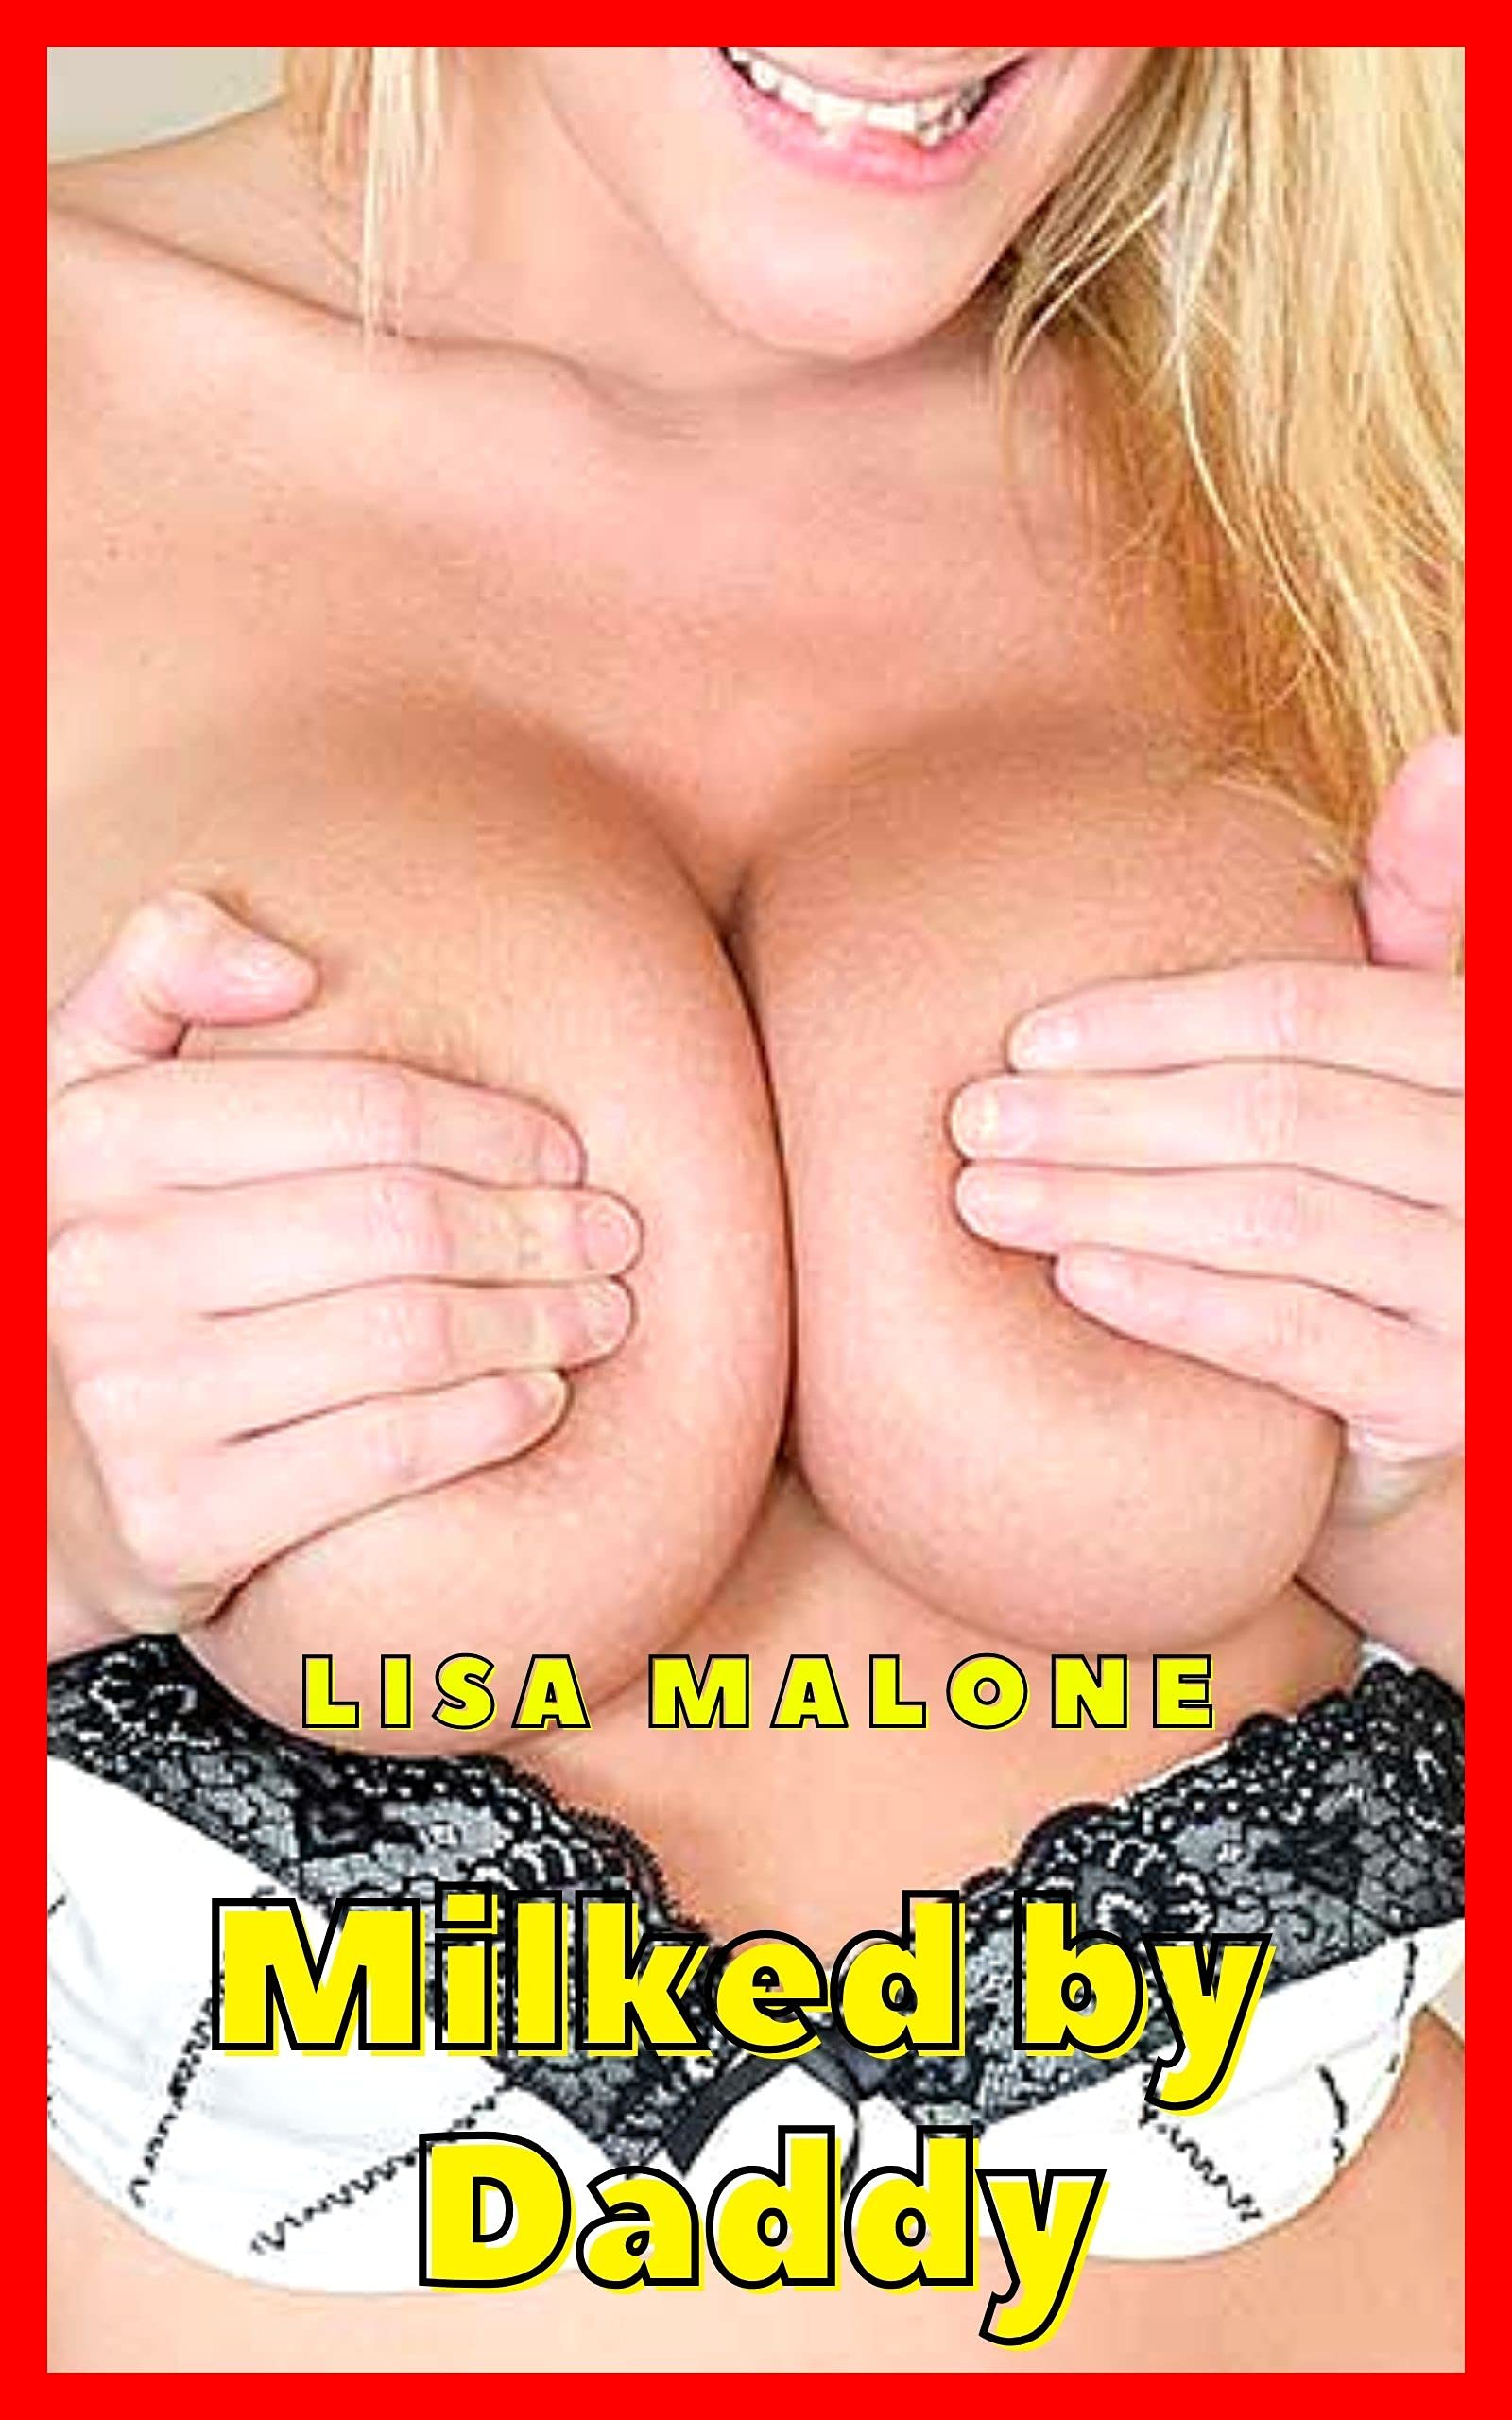 Milked by Daddy - Kindle, Ebook, Taboo Hardcore Erotic Short Sex Stories Collection For Woman